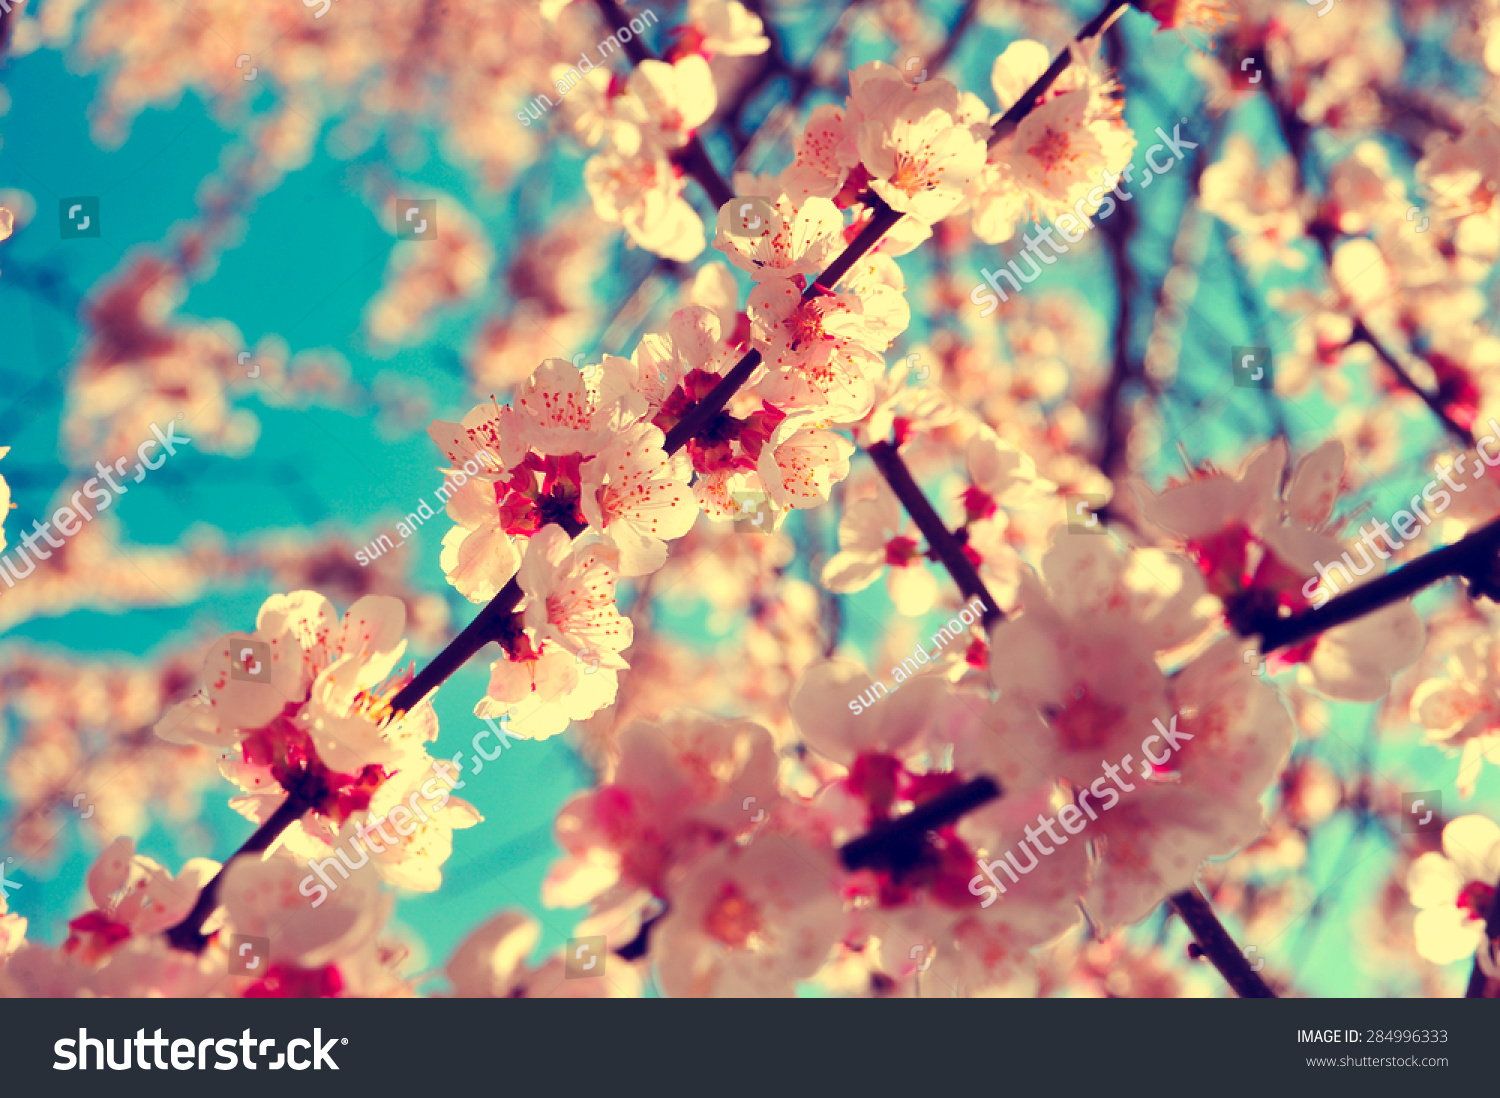 Royalty Free Apricot Tree Branch With Flowers 284996333 Stock